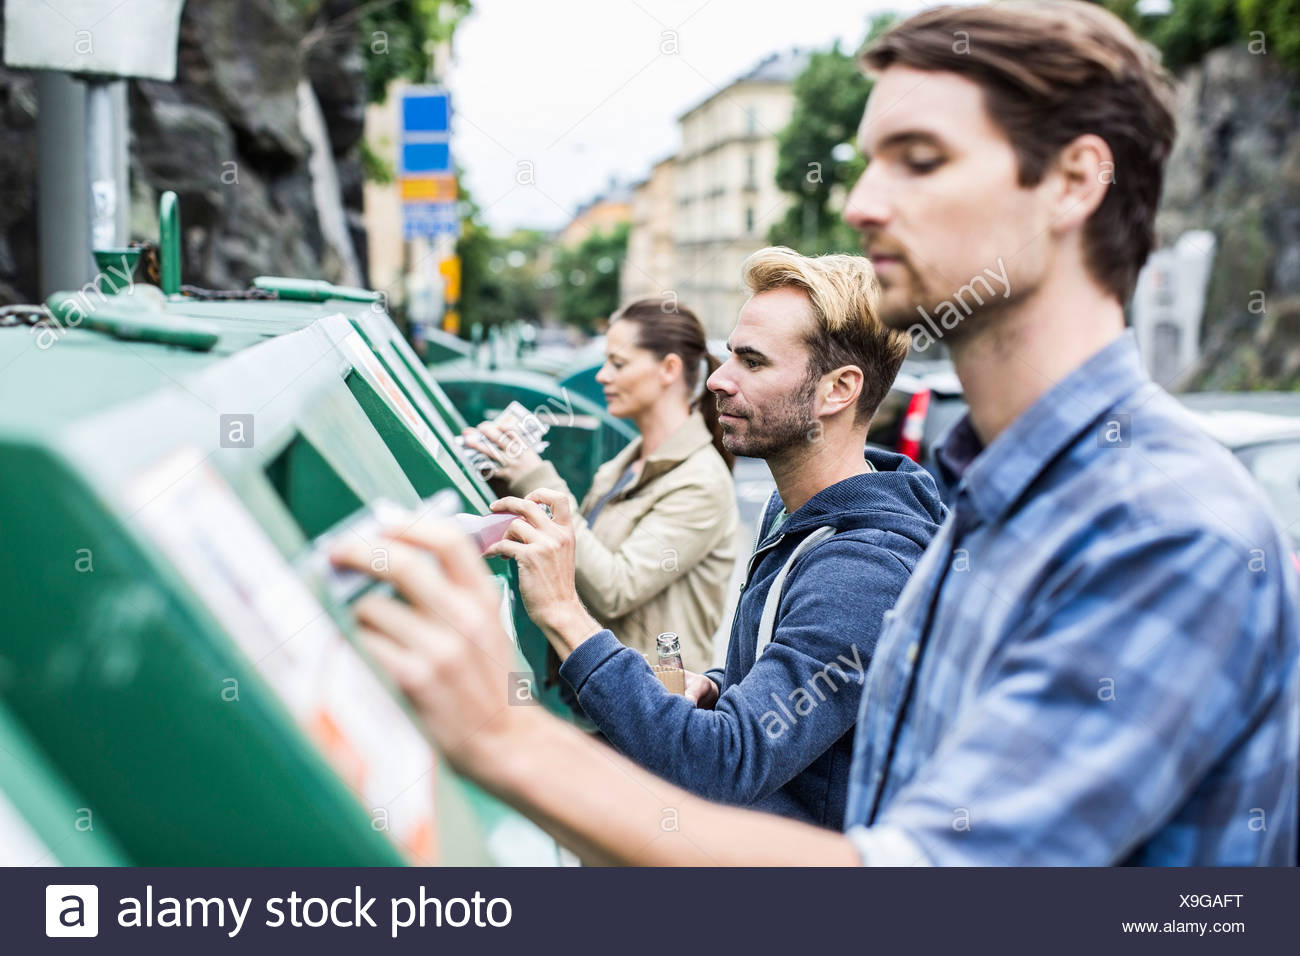 Friends putting recyclable materials into recycling bins - Stock Image